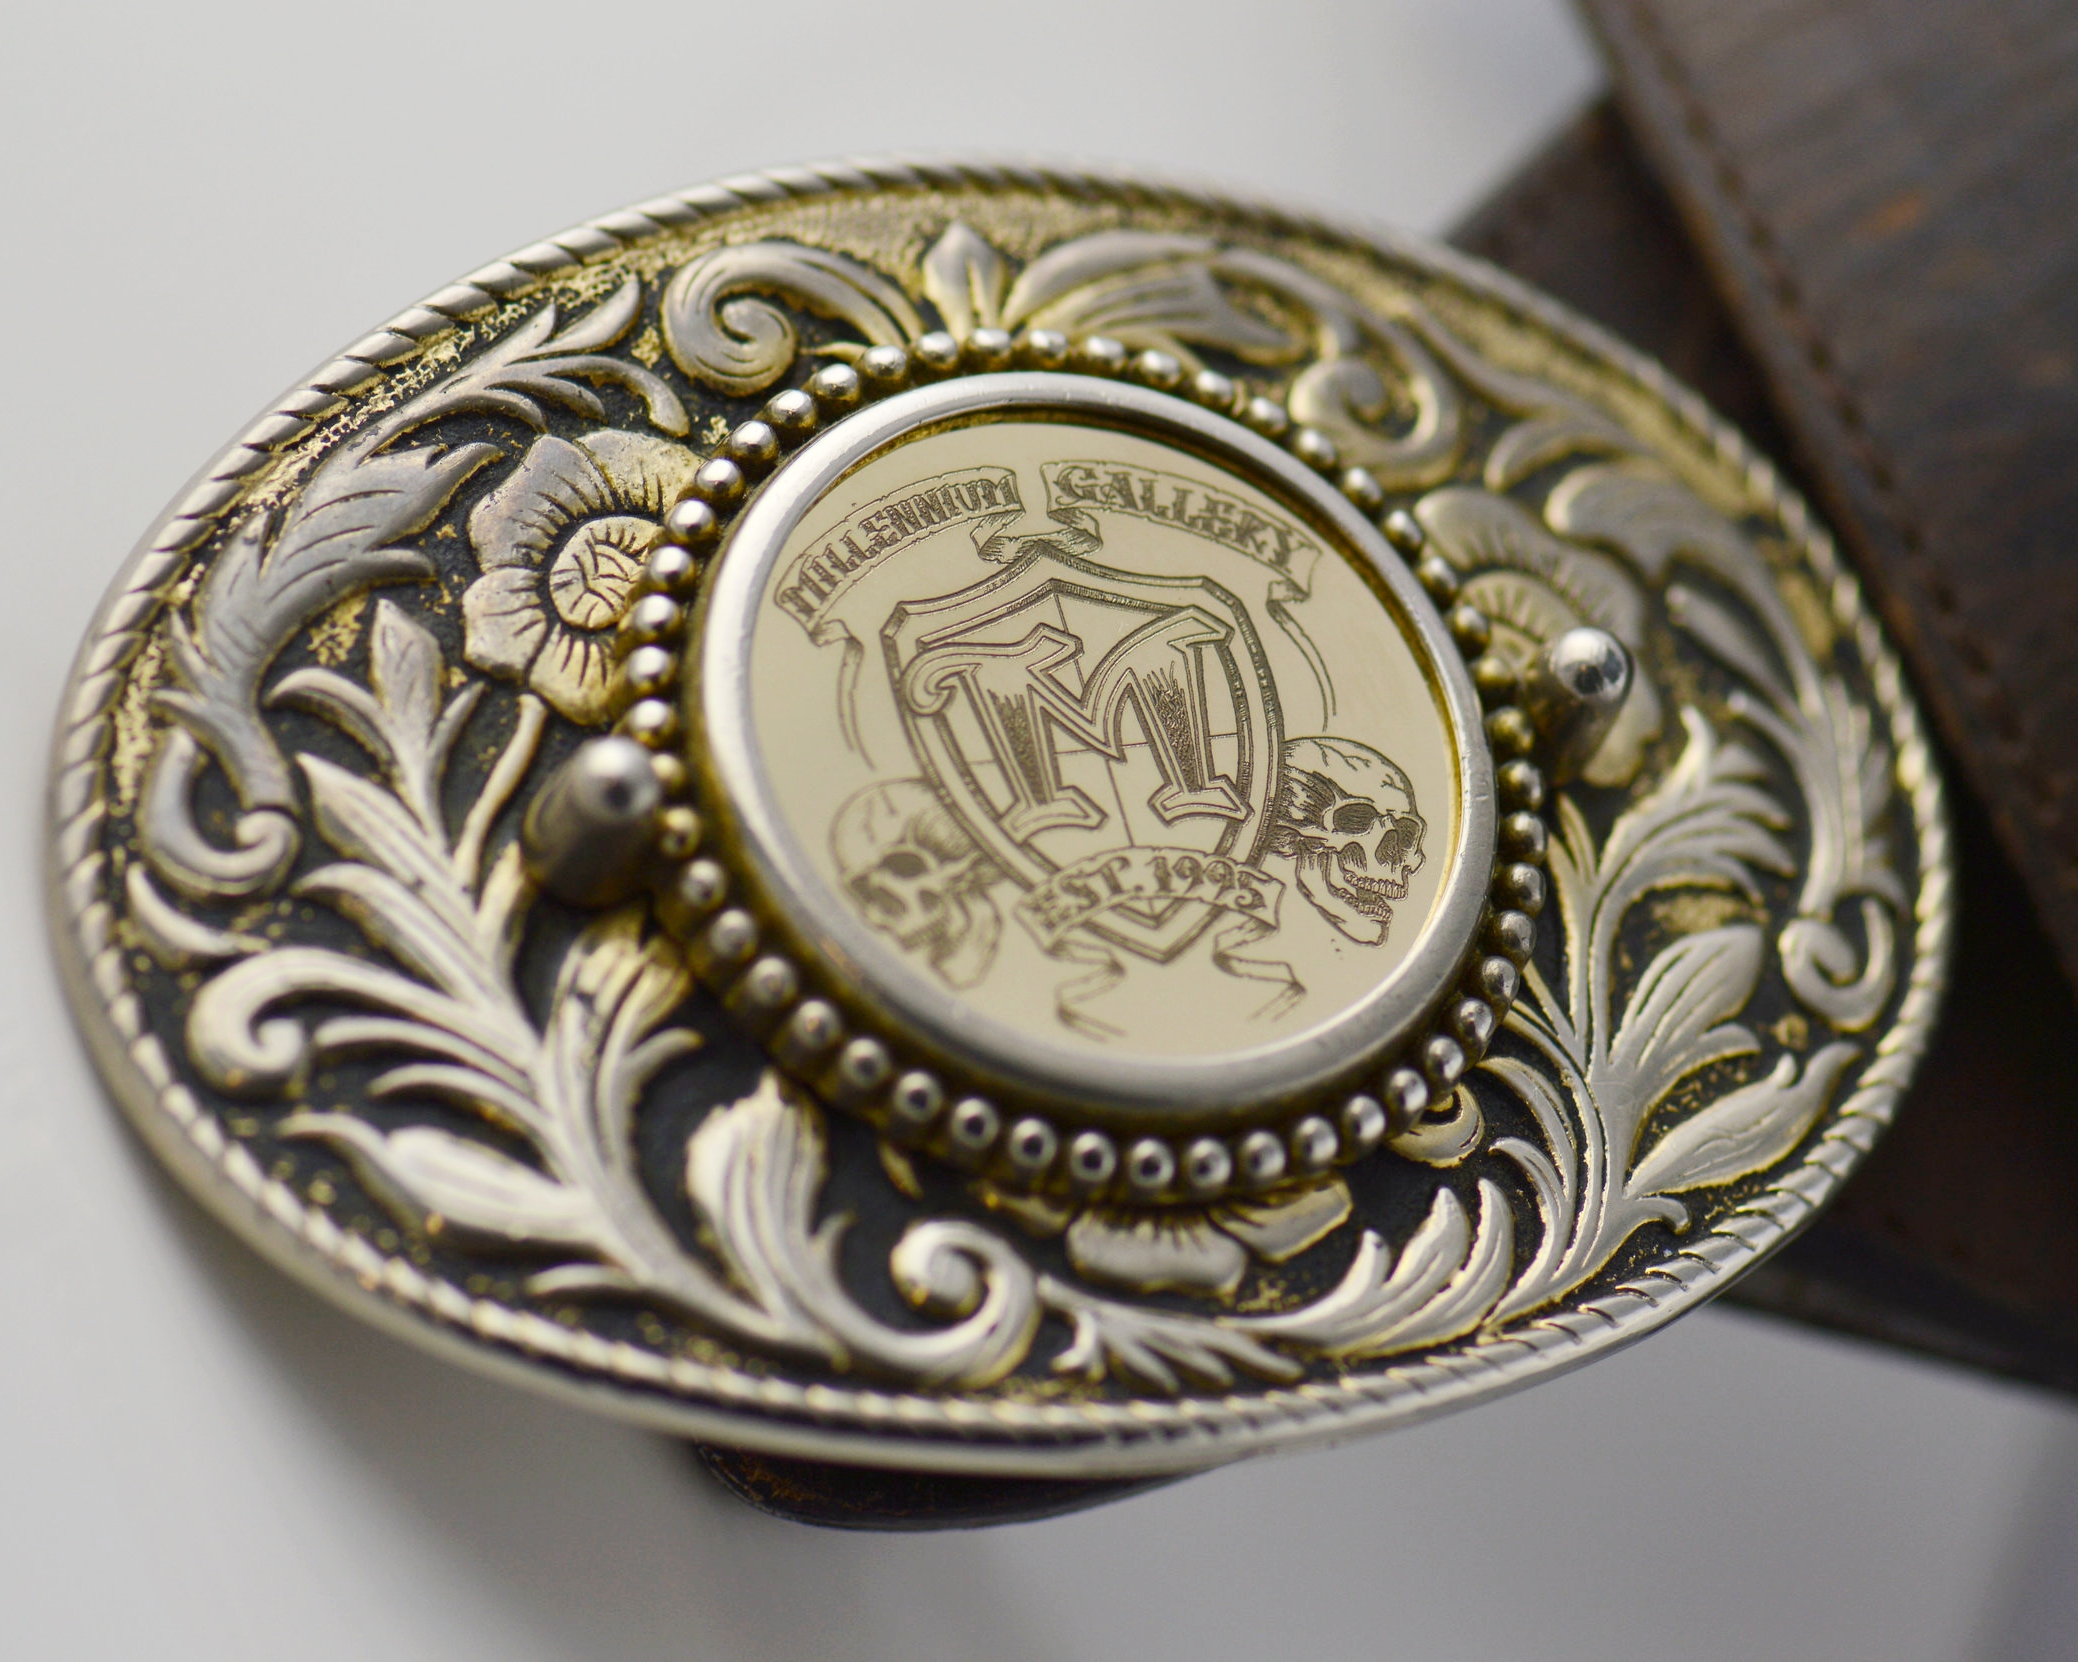 A vintage belt buckle modified to carry a custom engraved solid gold coin with the shop logo for a staff gift.